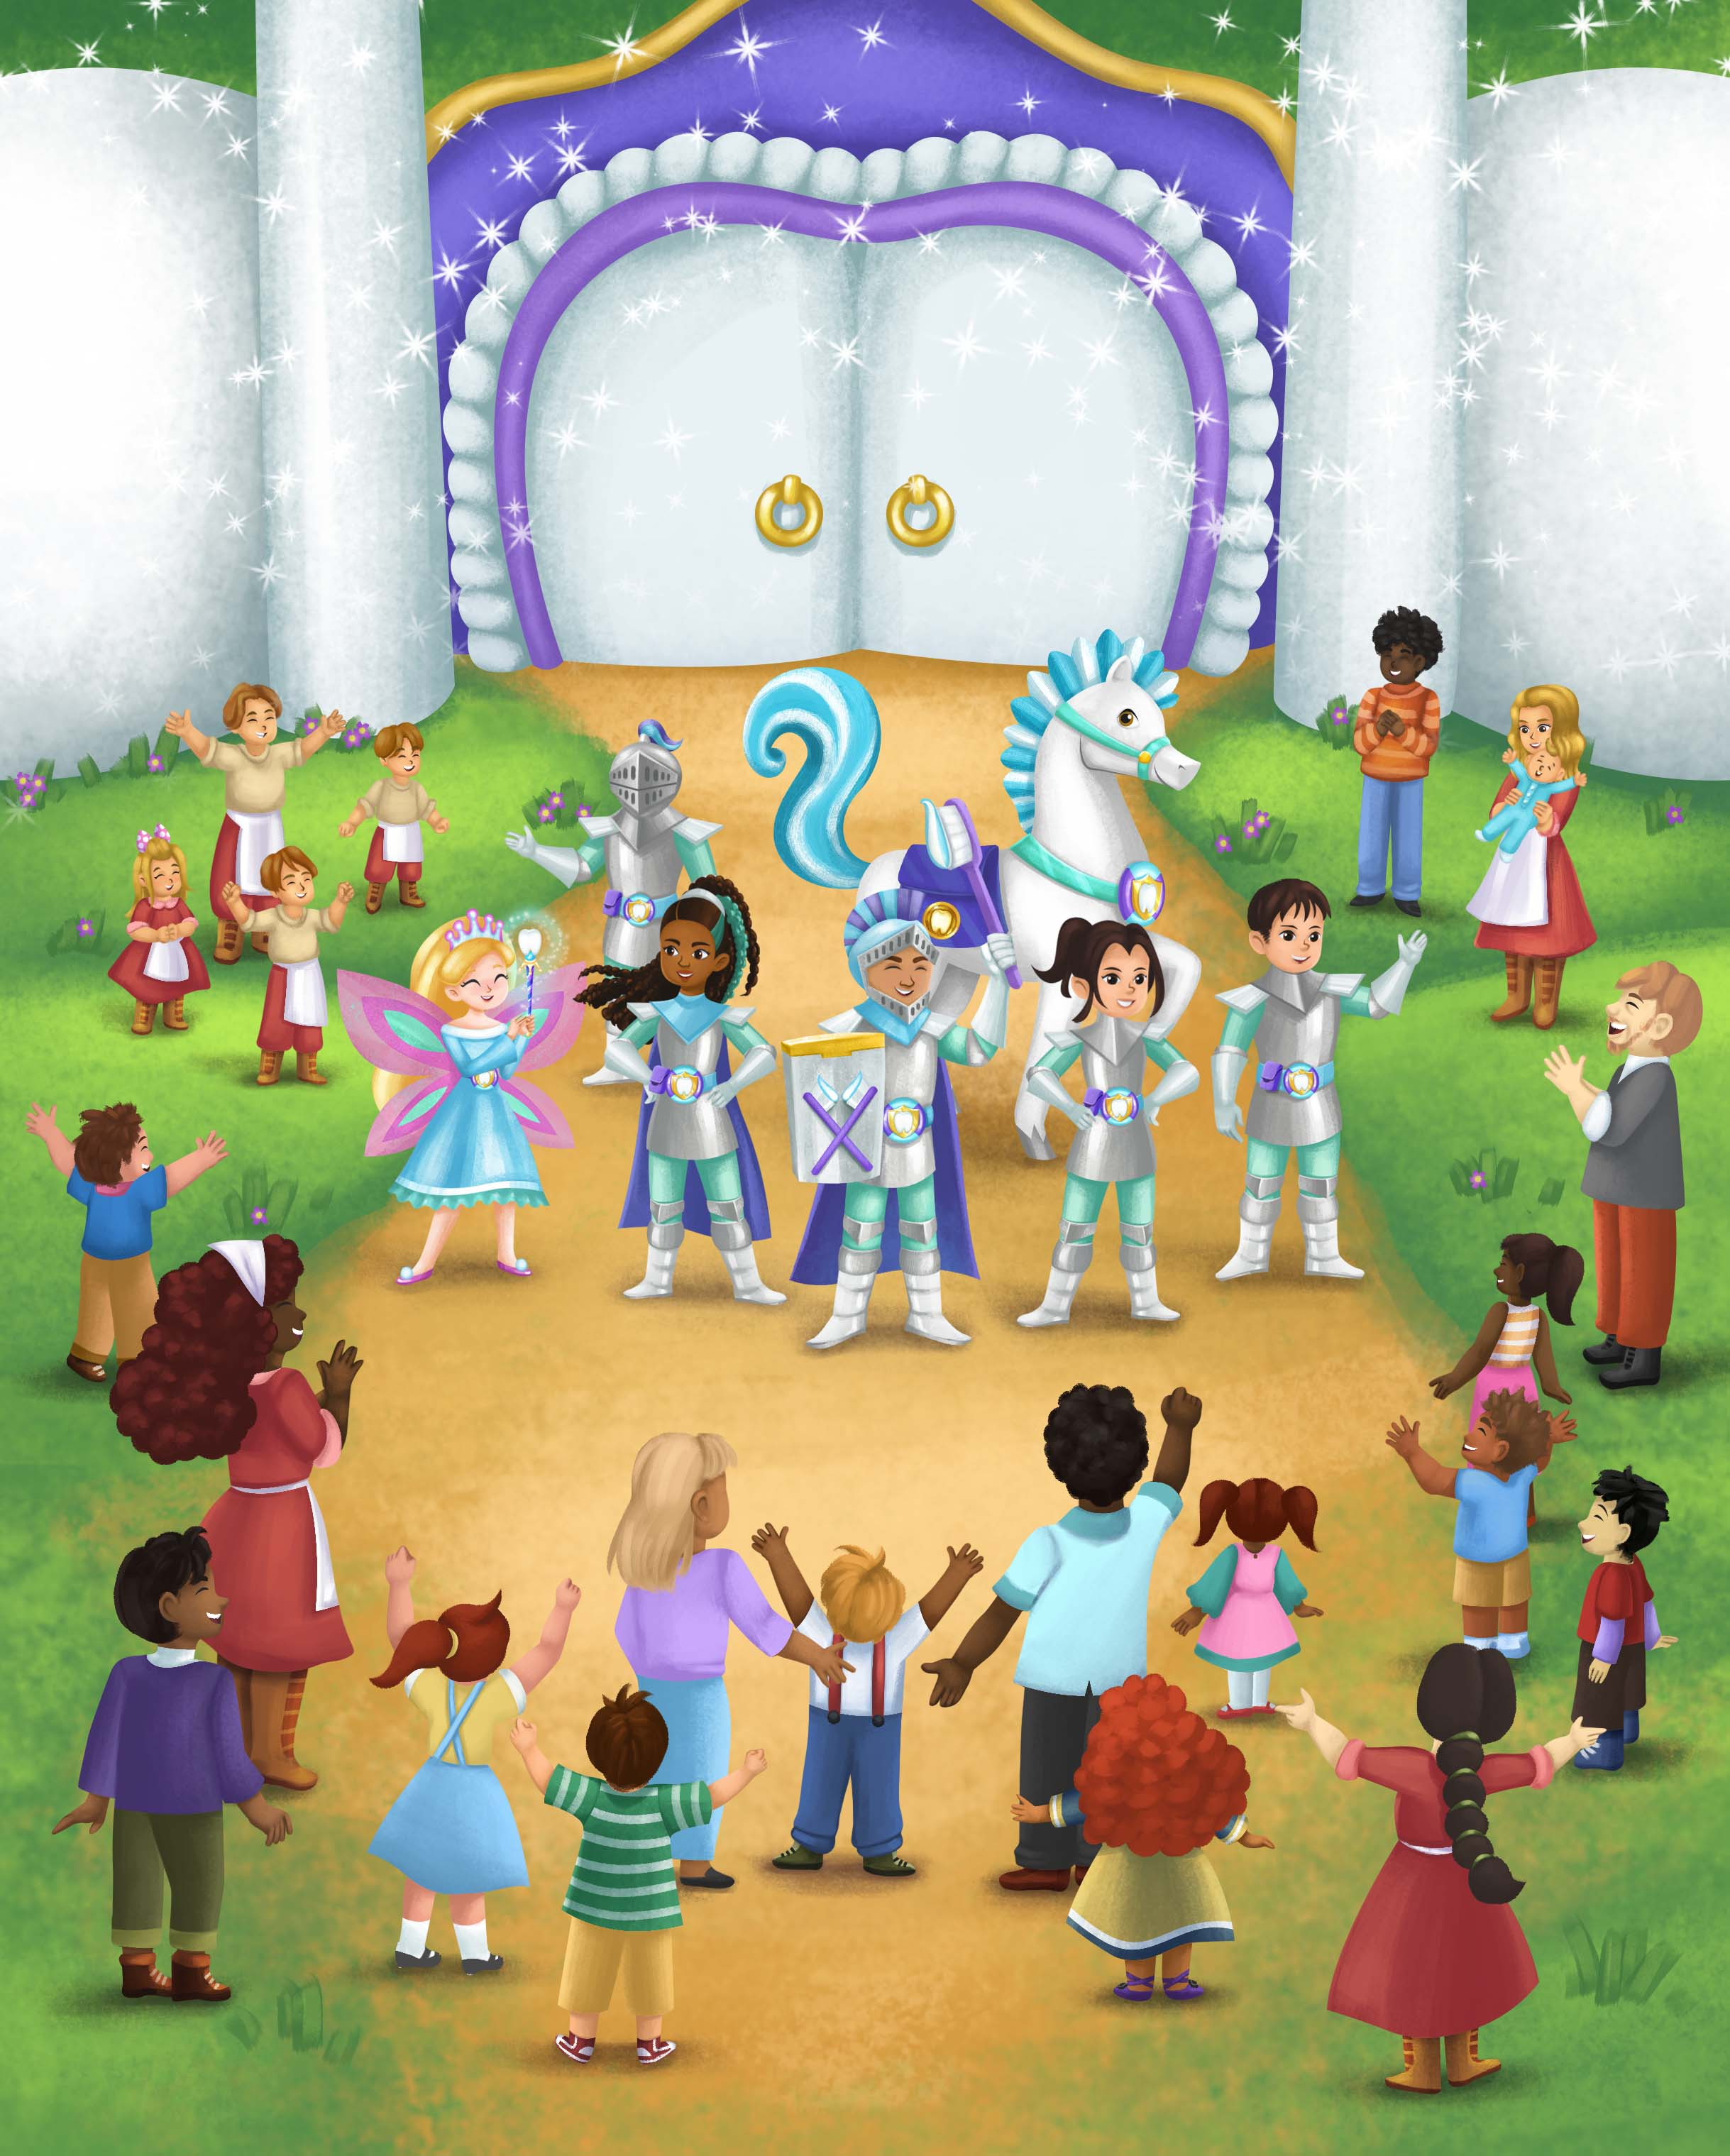 Hero scene from the Adventures of Brushalot storybook, featuring the tooth Fairy, General Floss, Sir Brushalot, Incisor, and the Knights of Floss as well as villagers of all ages from Pearly White City.